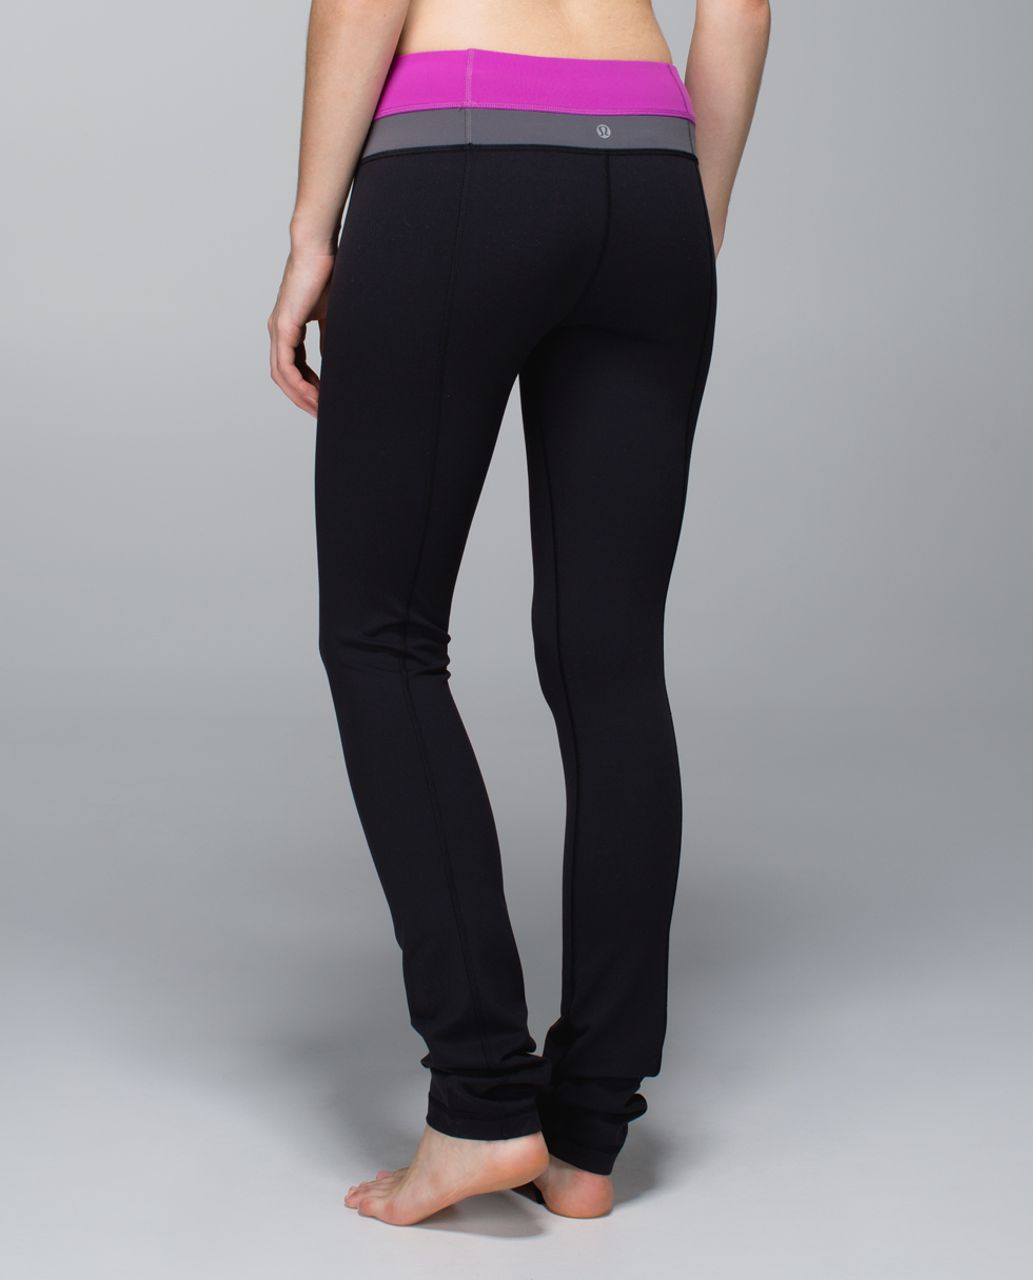 ffe211da1 Lululemon Skinny Groove Pant  Full-On Luon - Black   Ultra Violet   Soot  Light - lulu fanatics